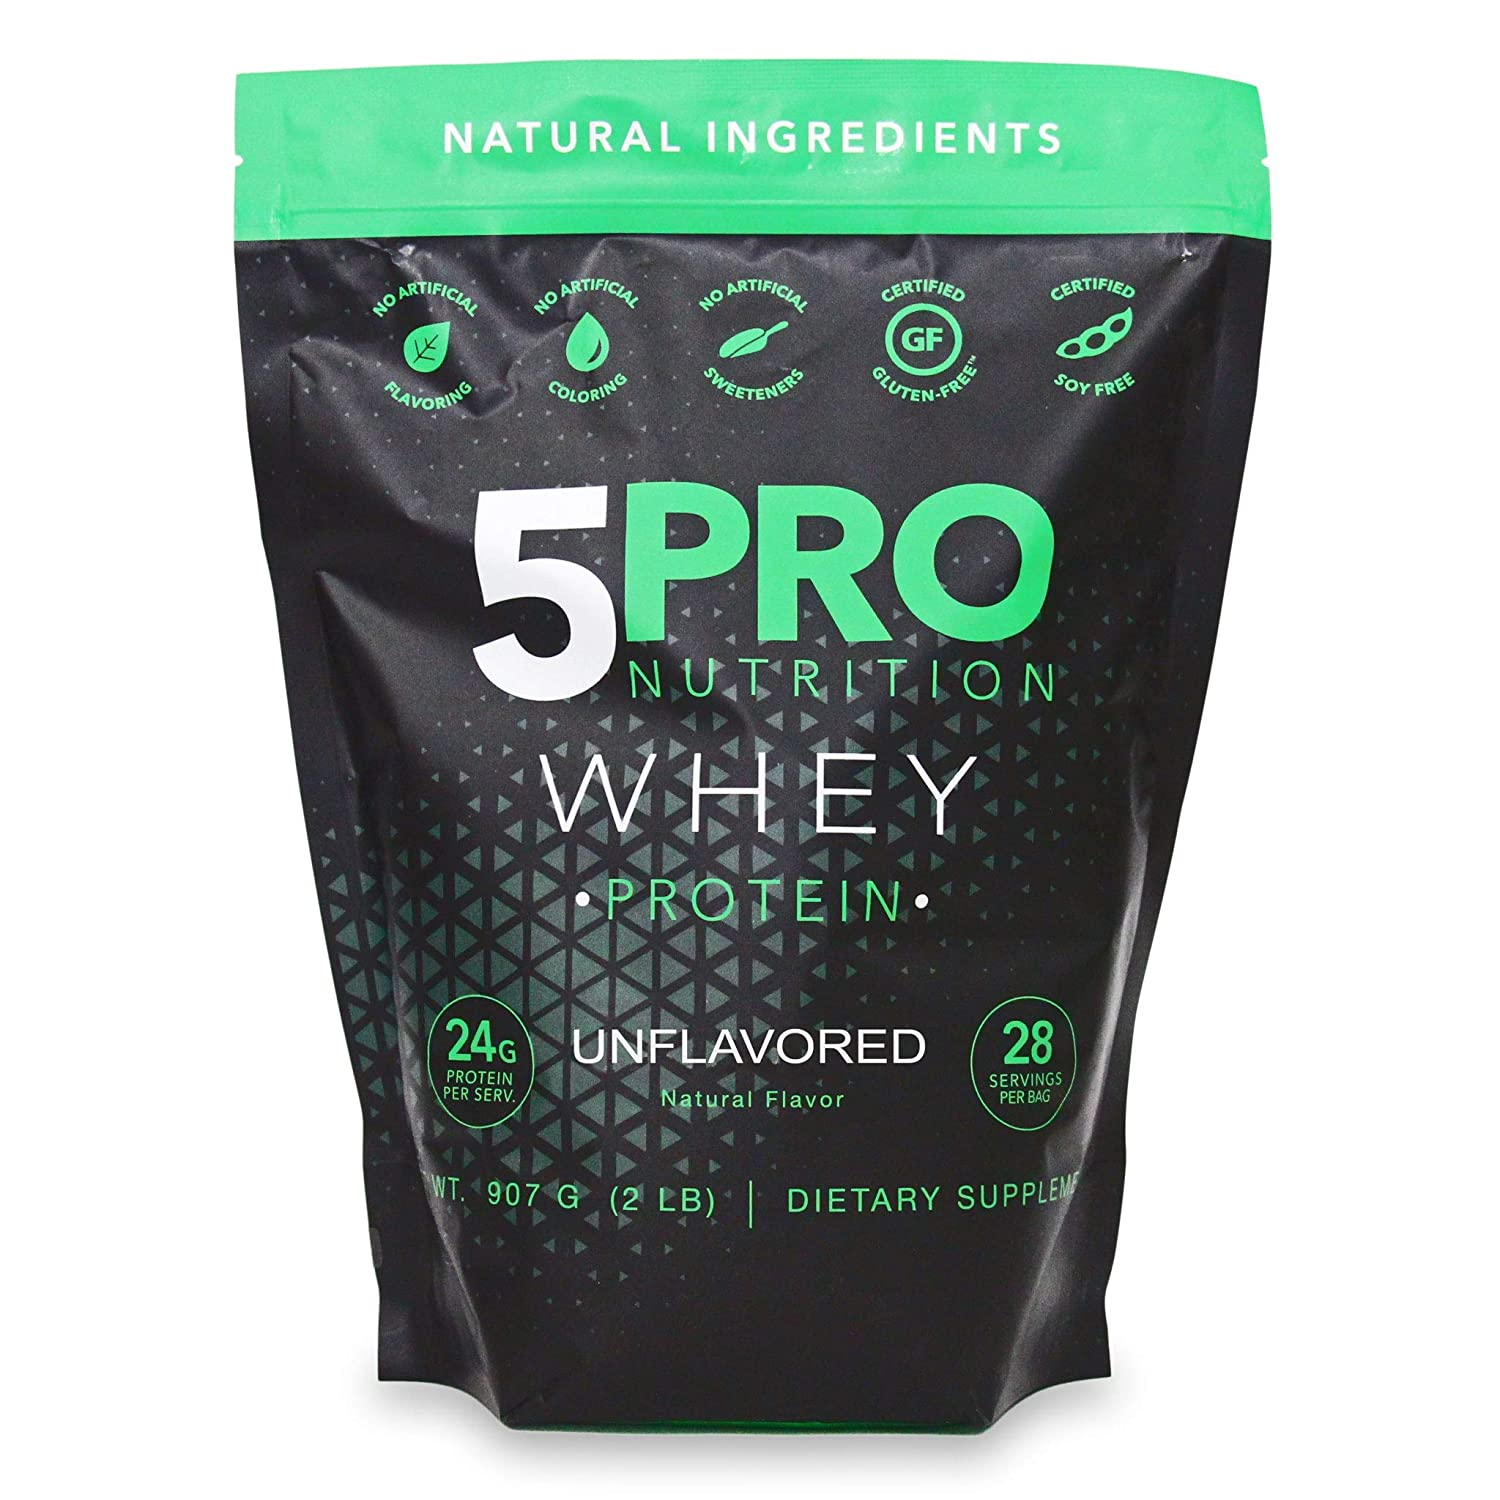 5Pro Nutrition 2lb Natural Clean Whey Protein No Artificial Ingredients or Added Sugars rBGH Free GMO-Free Gluten Free Preservative Free 2LB – Unflavored